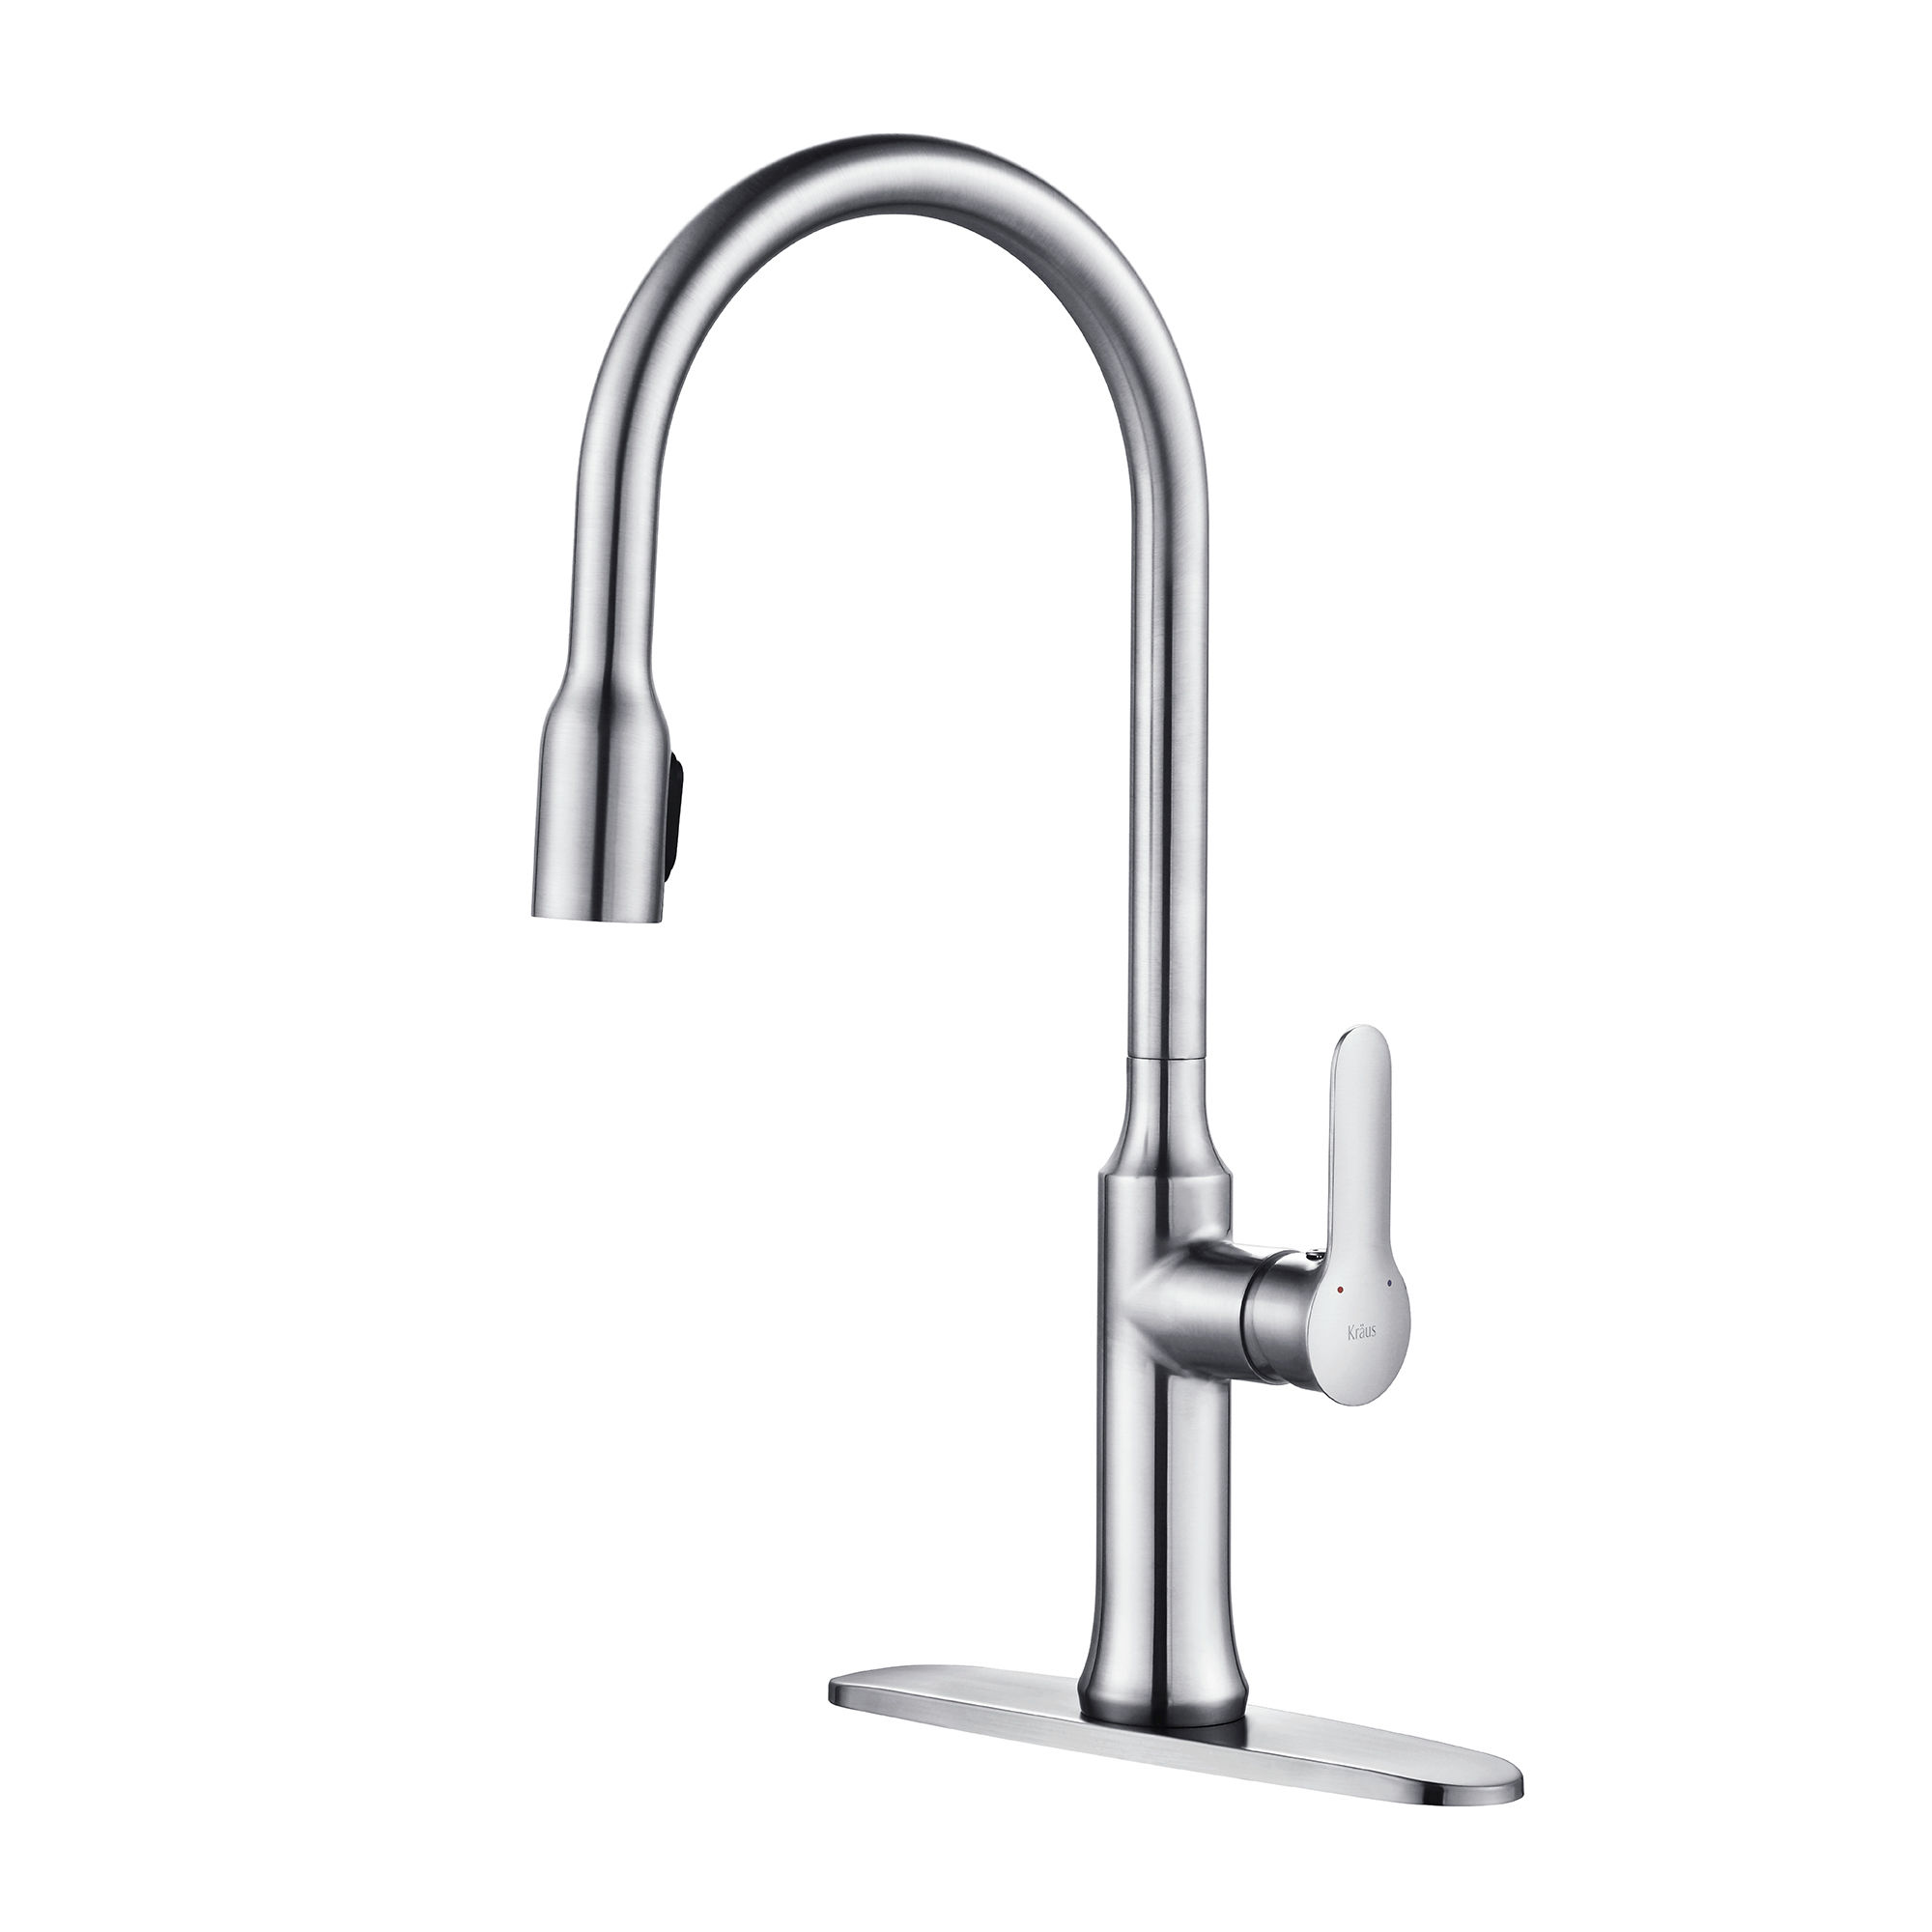 braswell hose pic and for pull singlehole faucet down spout fascinating spring kitchen pulldown tfast with concept styles